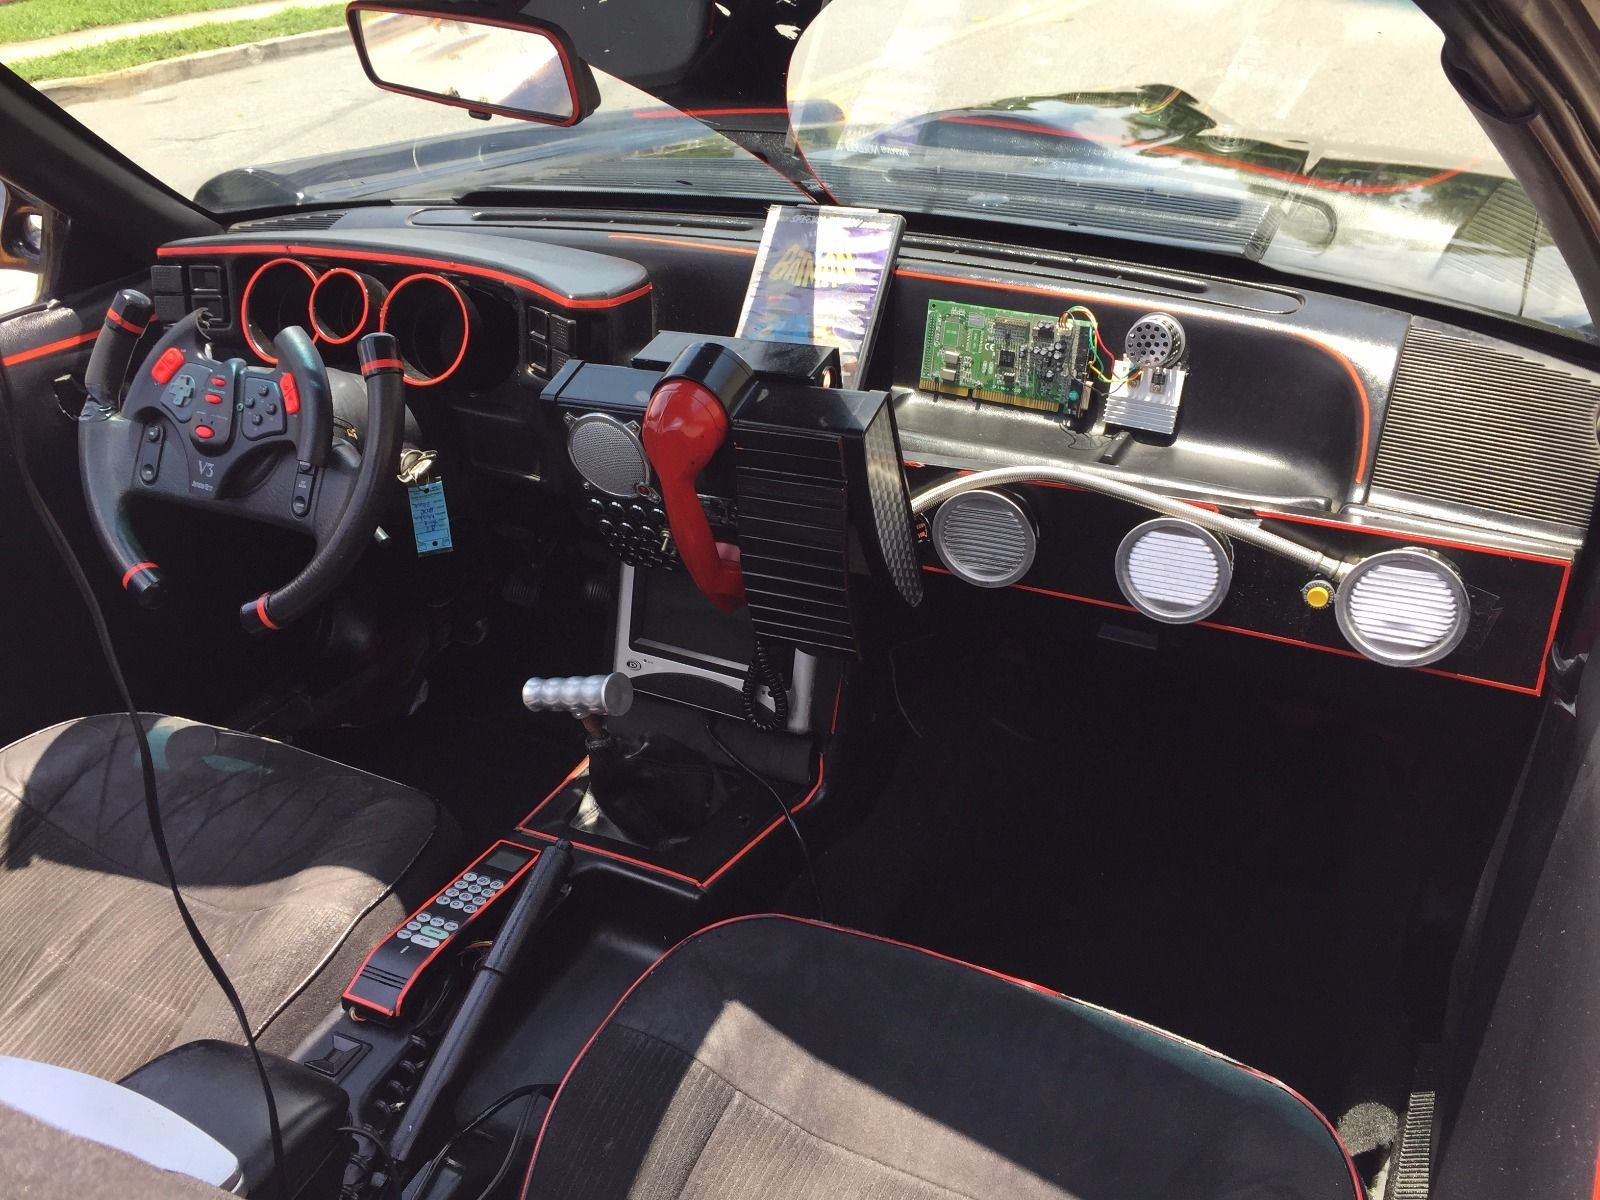 Find this 1987 ford mustang batmobile here on ebay bidding for 5 000 with 12 000 buy it now located in west palm beach fl